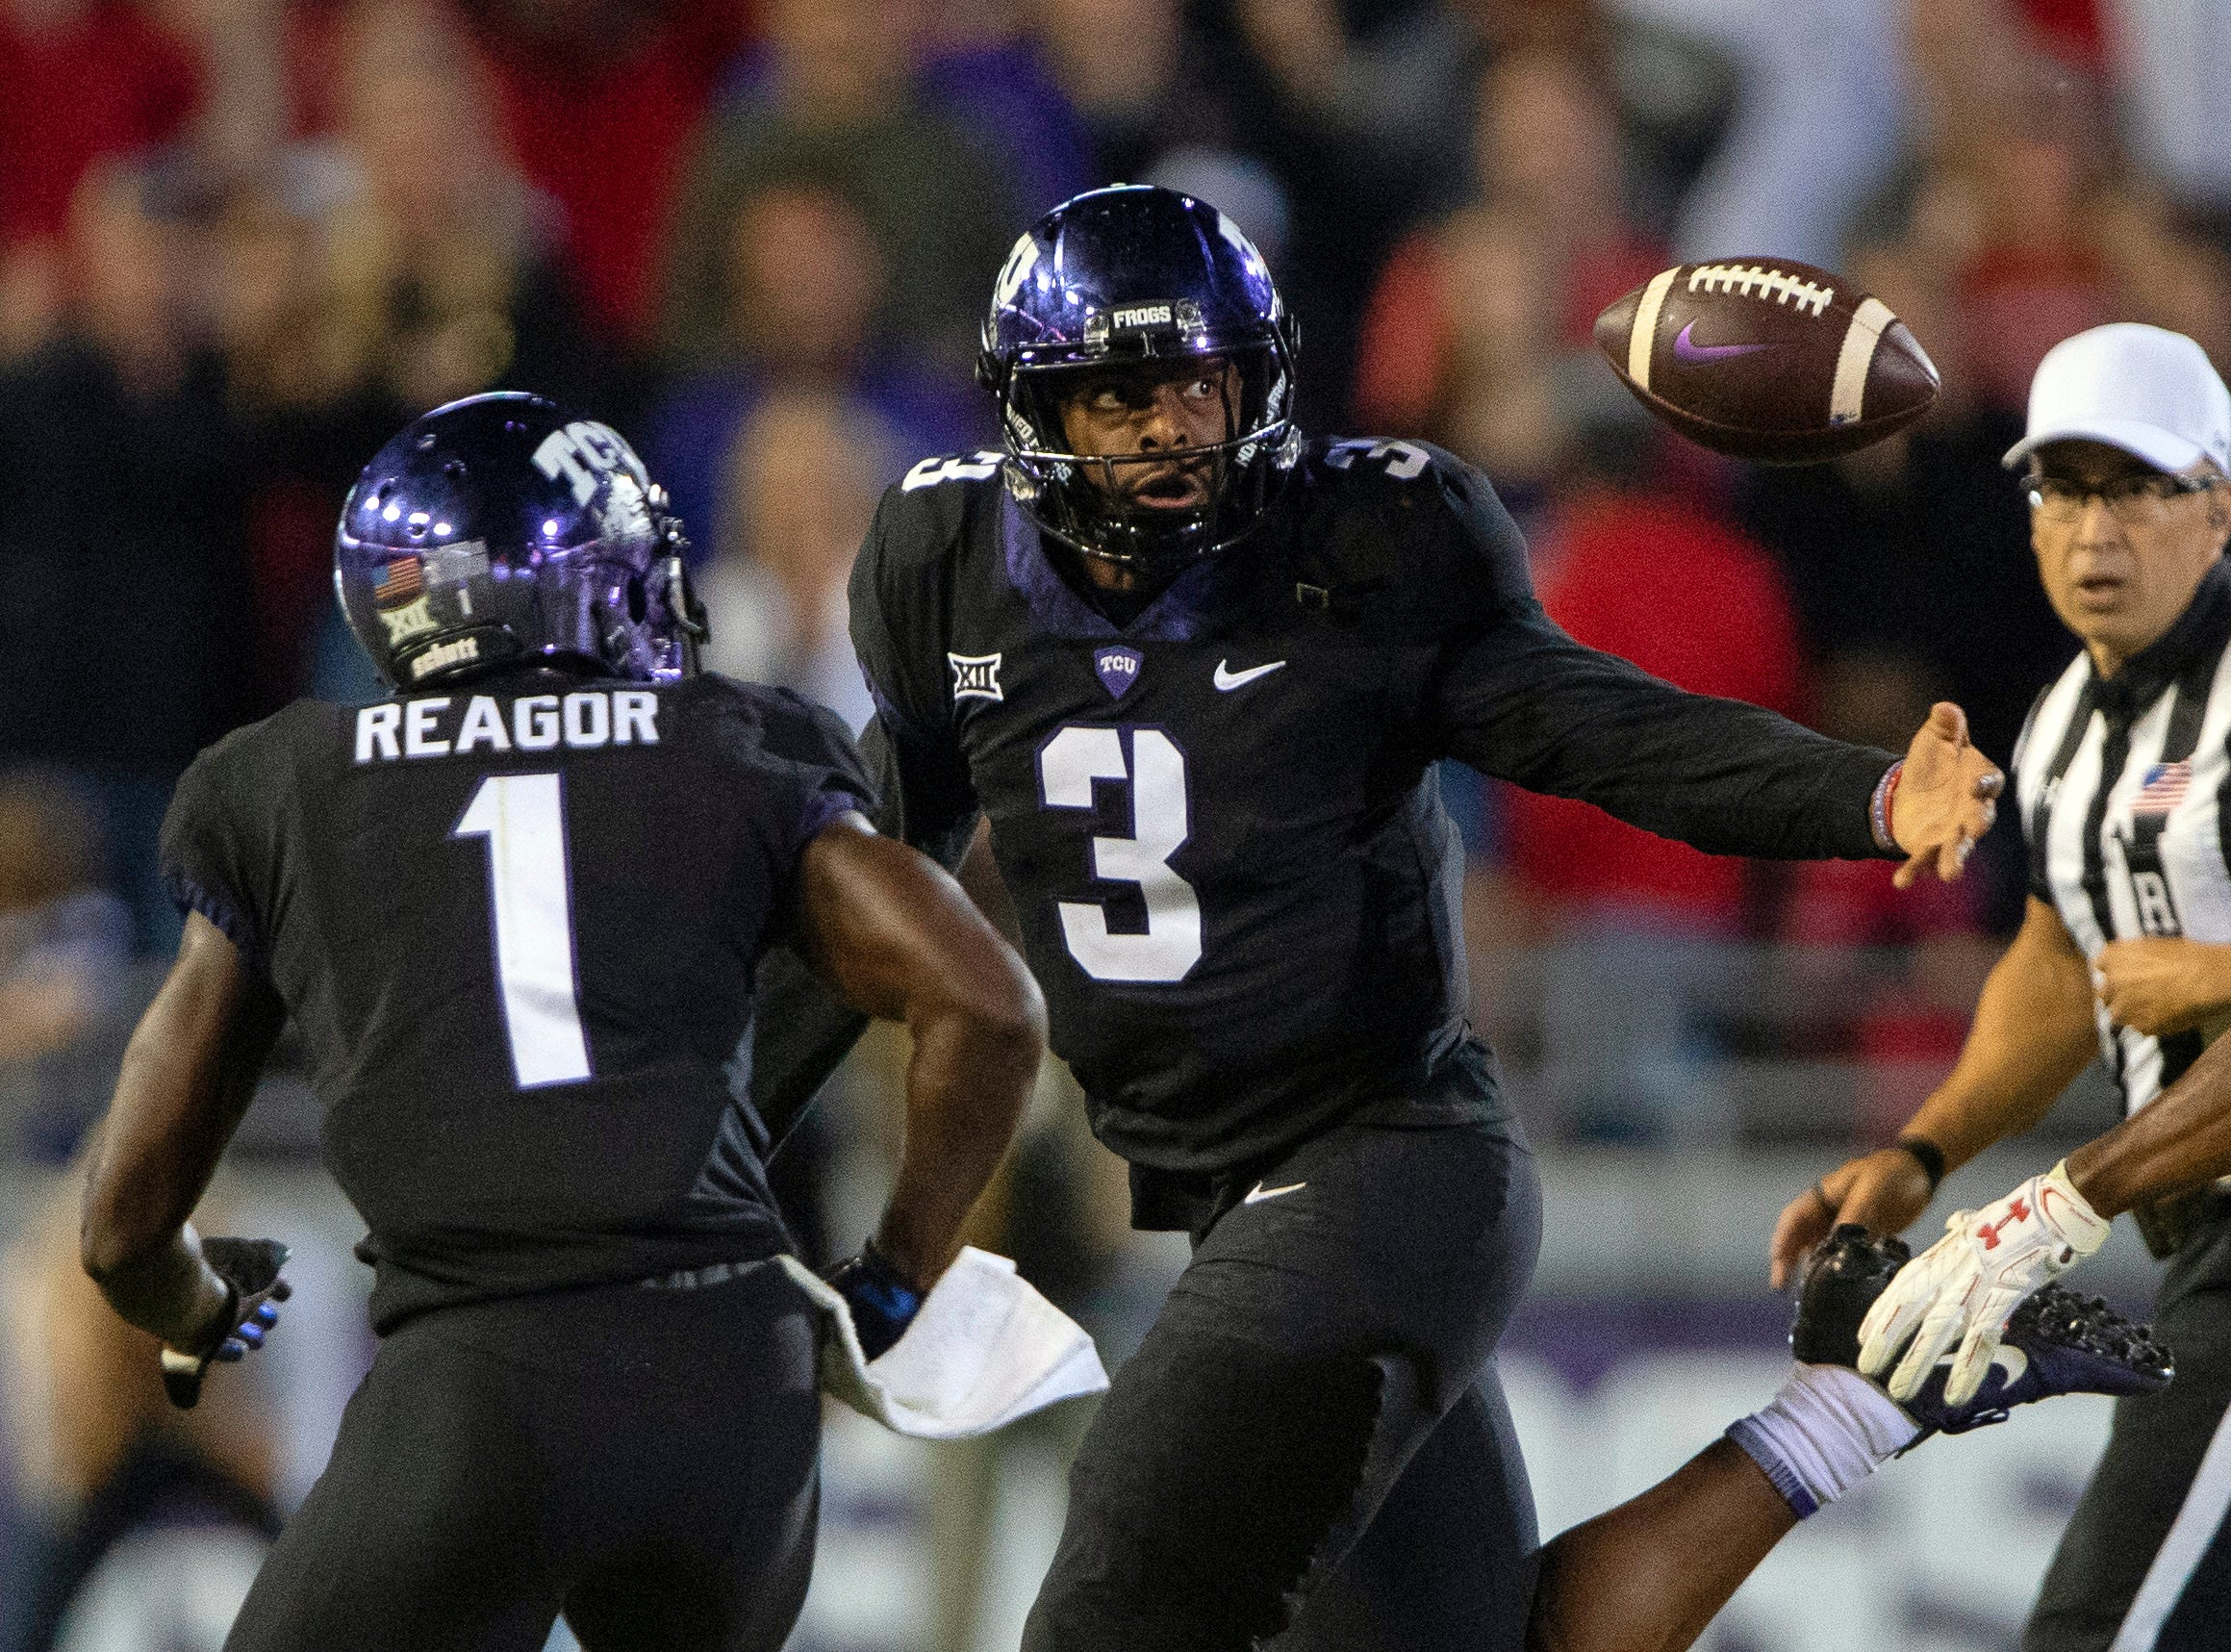 TCU Horned Frogs quarterback Shawn Robinson (3) loses control of the ball while running against the Texas Tech Red Raiders defense during the second half at Amon G. Carter Stadium.